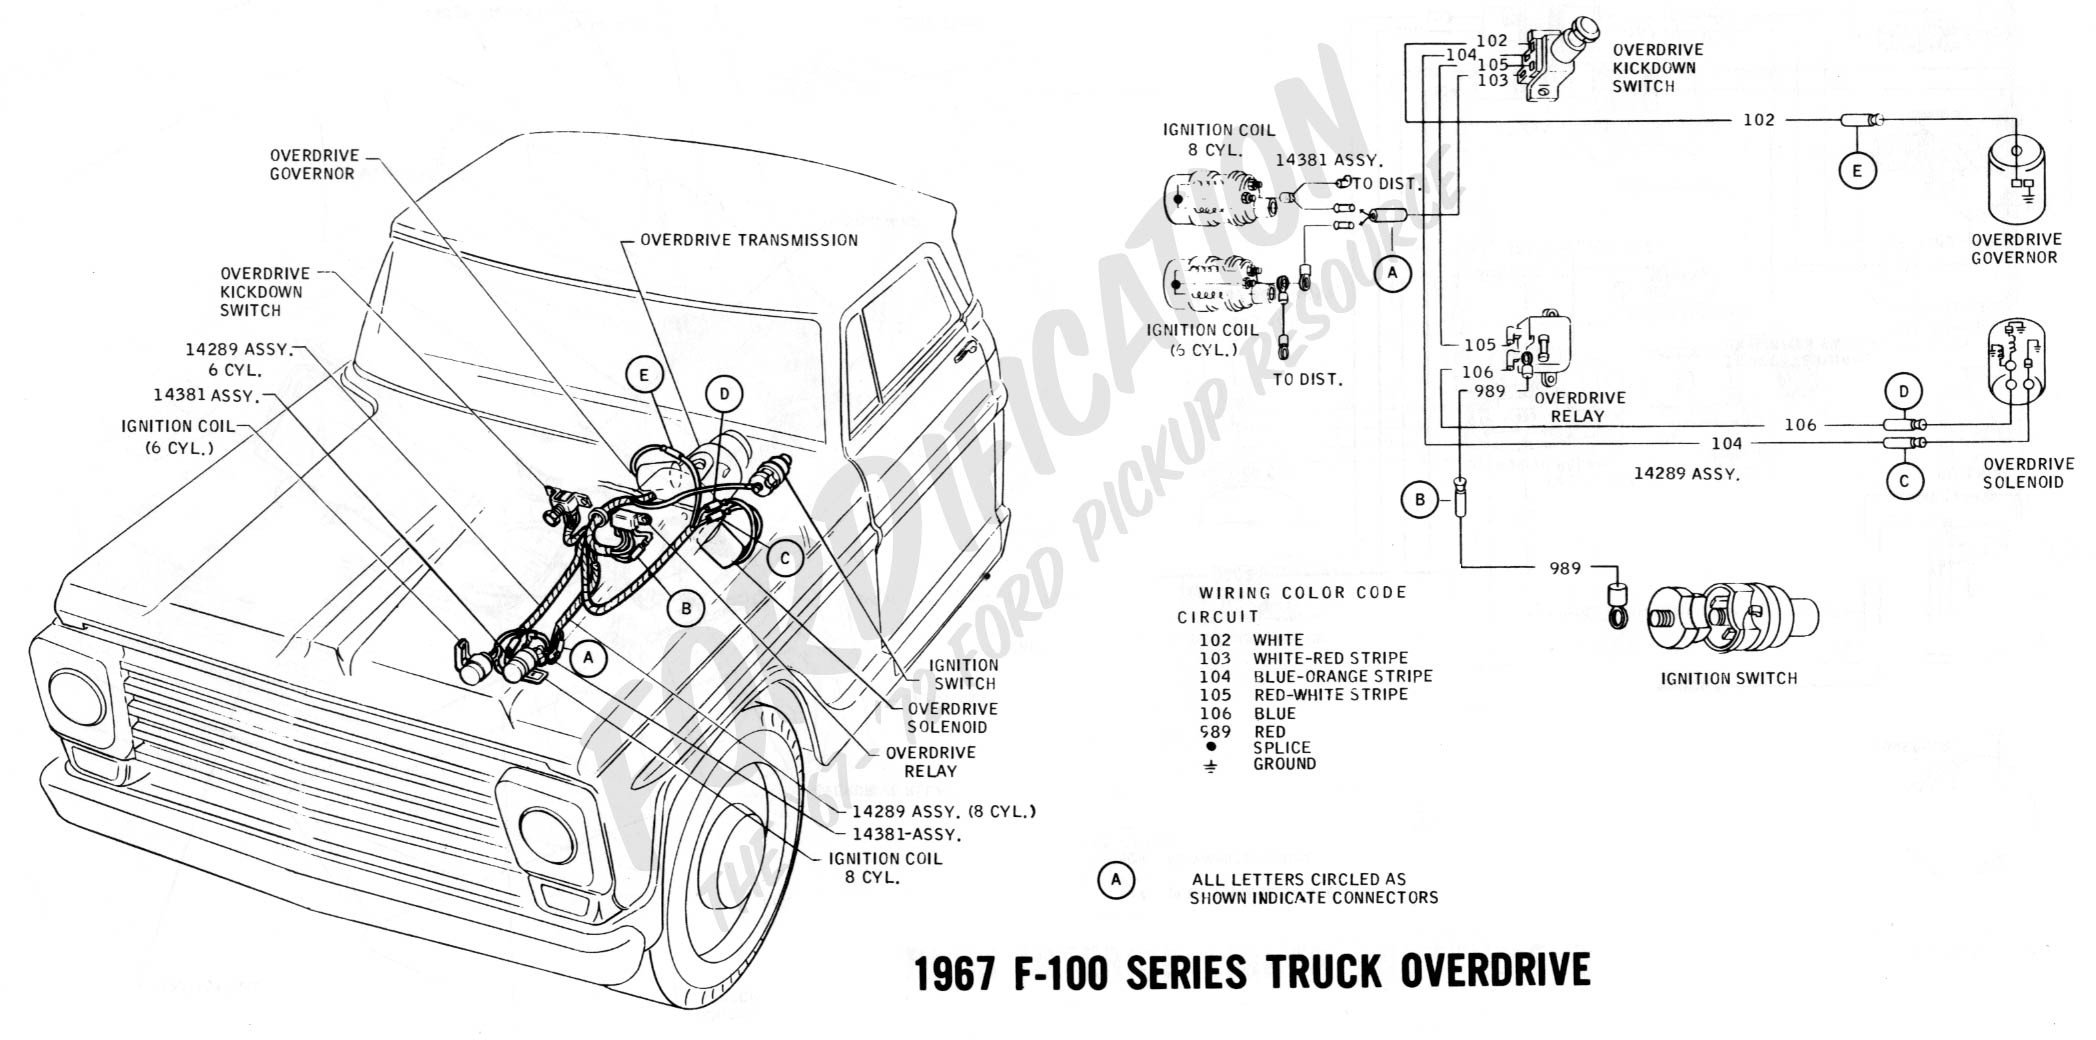 Chevy Truck Steering Column Diagram ford Truck Technical Drawings and Schematics Section H Wiring Of Chevy Truck Steering Column Diagram